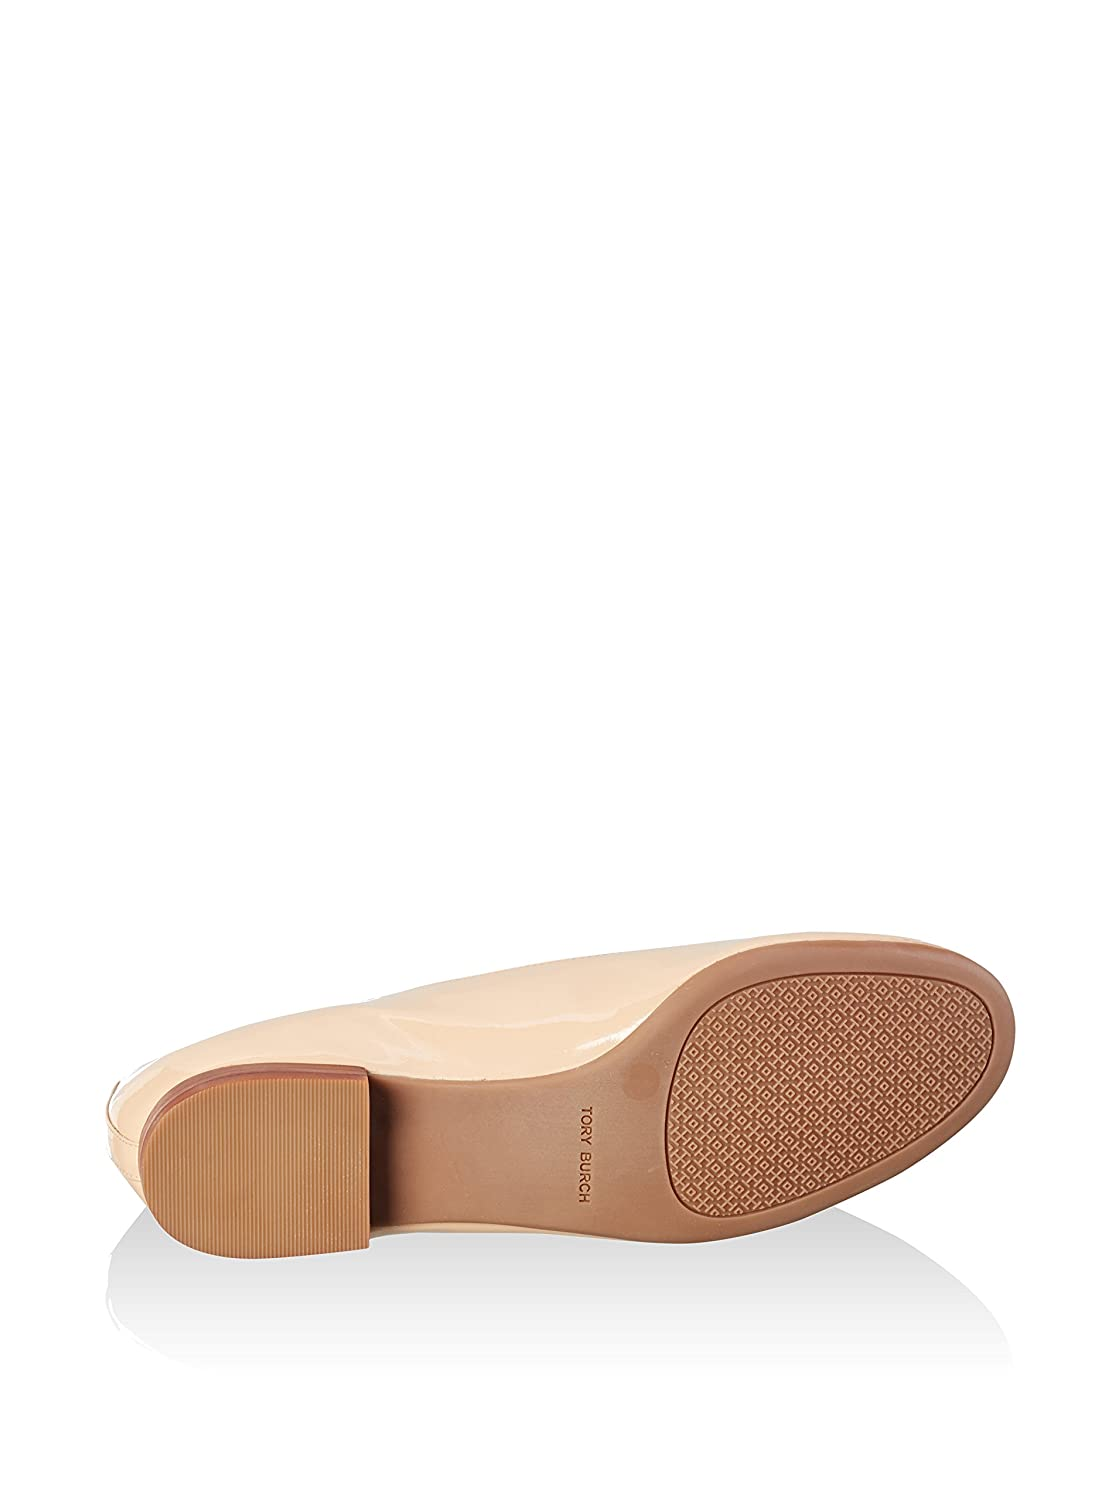 Tory Burch Women's Lucien Smoking Low-Top Slippers, Rosa Palo, 4.5:  Amazon.co.uk: Shoes & Bags